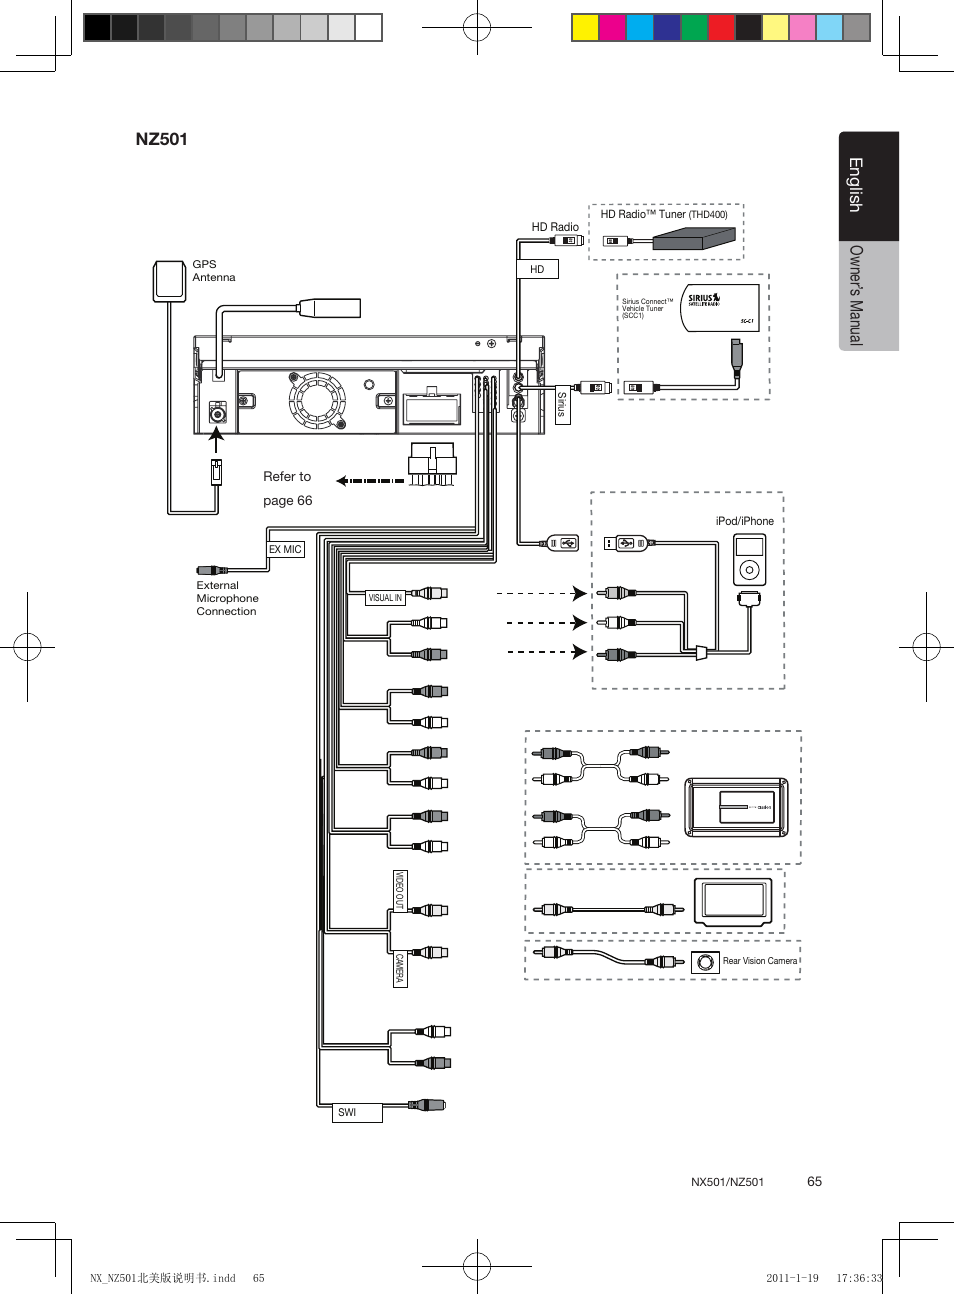 Wiring Diagram For Clarion Nx501